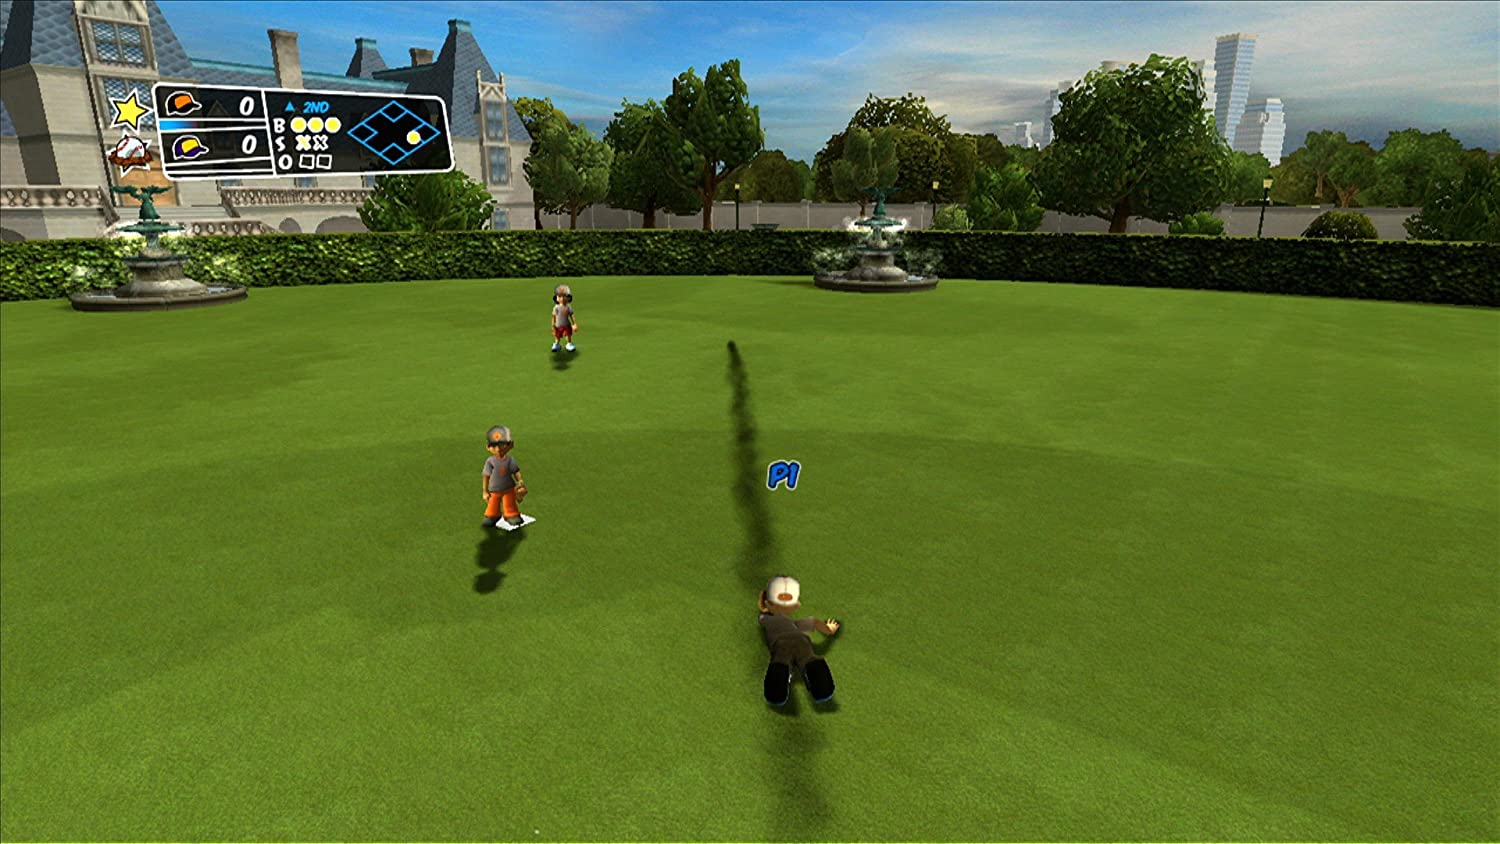 backyard sports sandlot sluggers wii standard edition wii